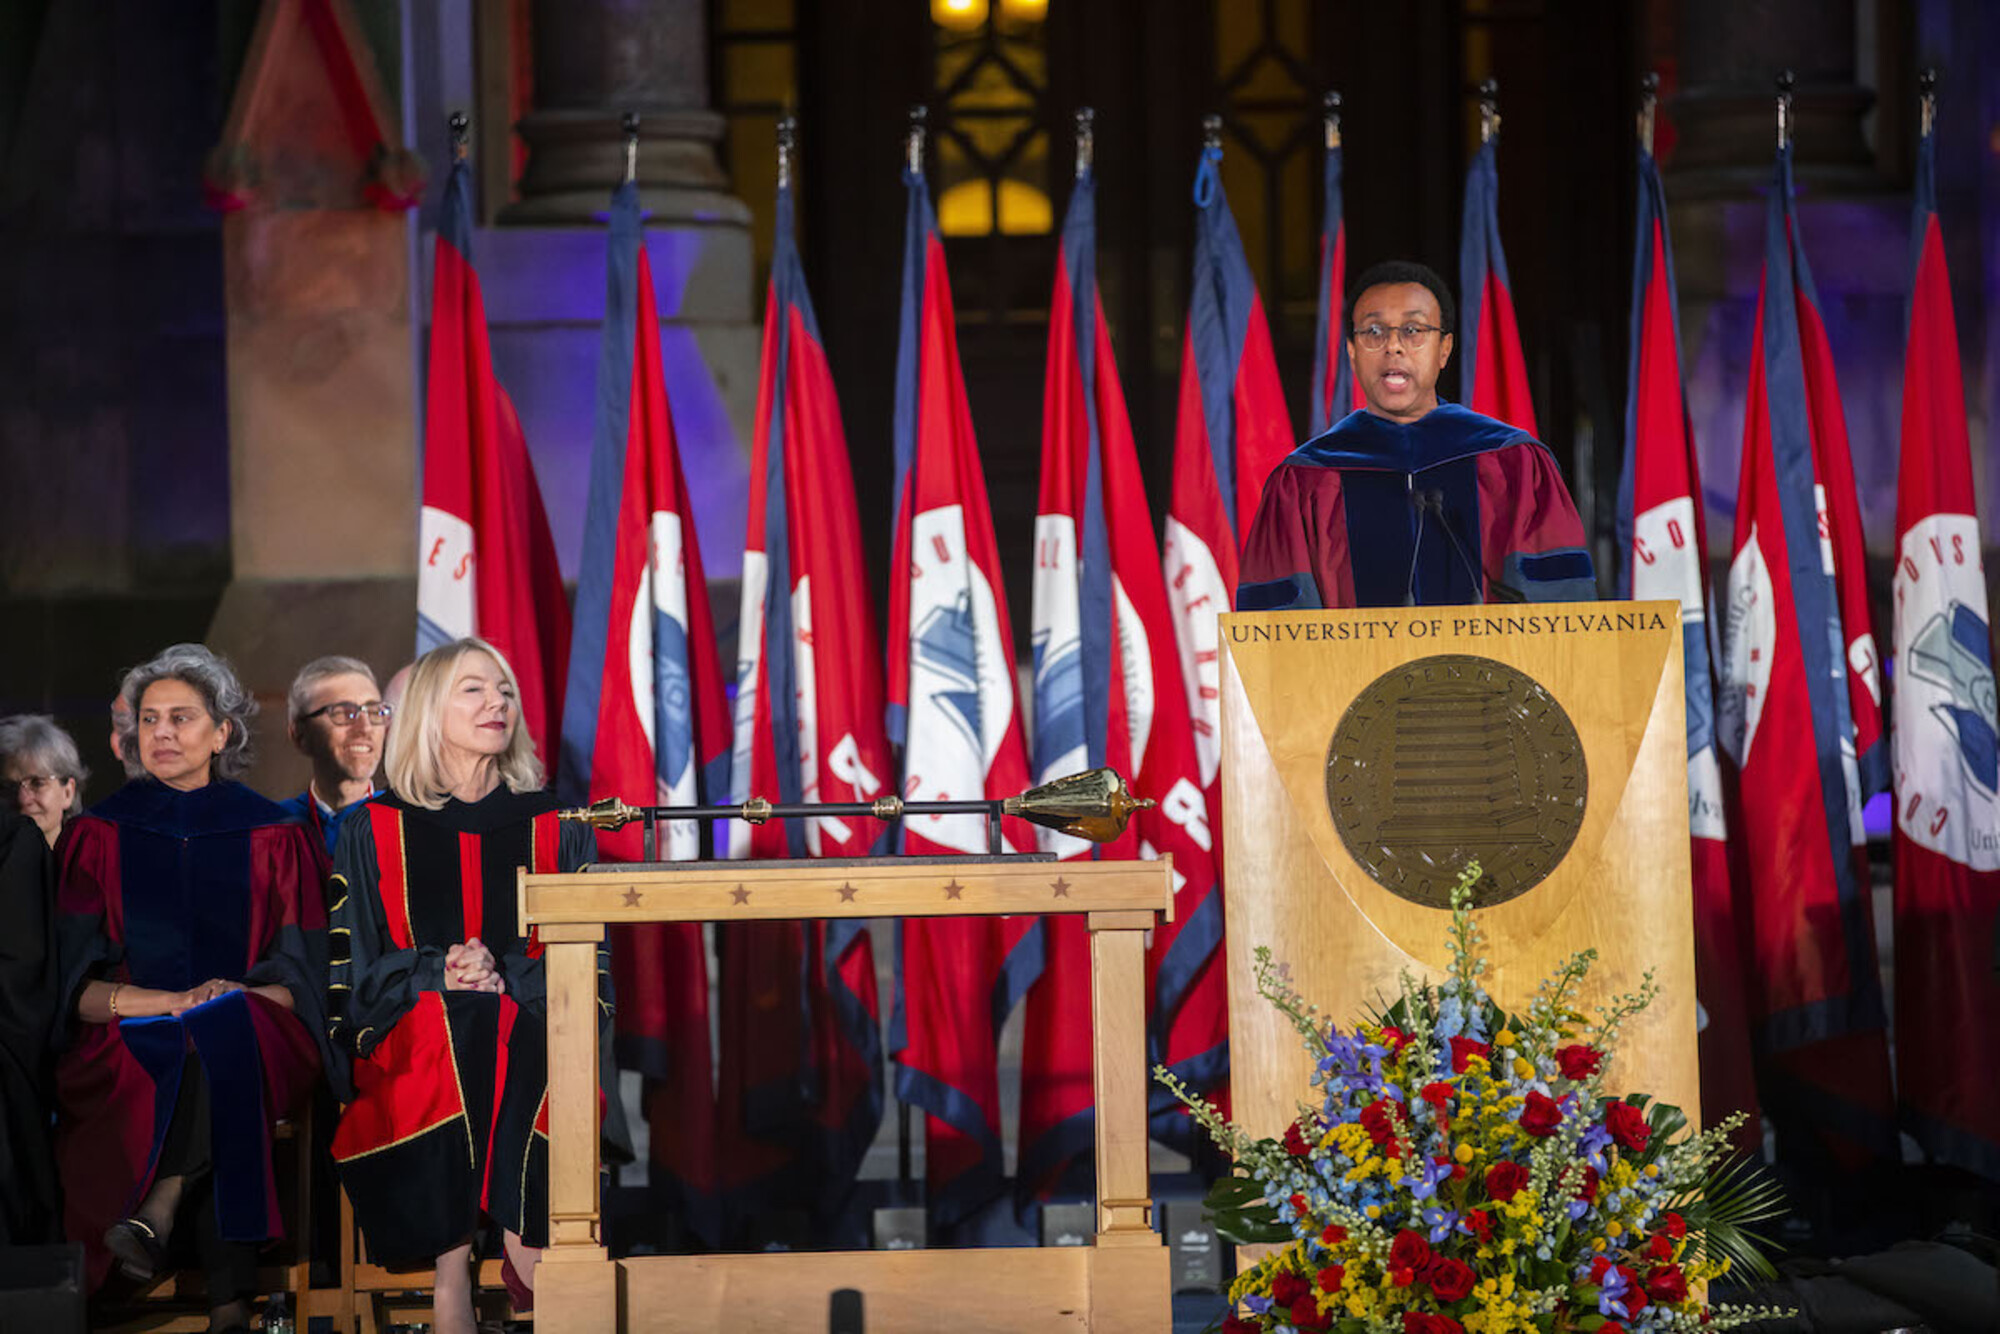 Penn Provost Wendell Pritchett speaks at the podium during convocation with Amy Gutmann and others seated to his right